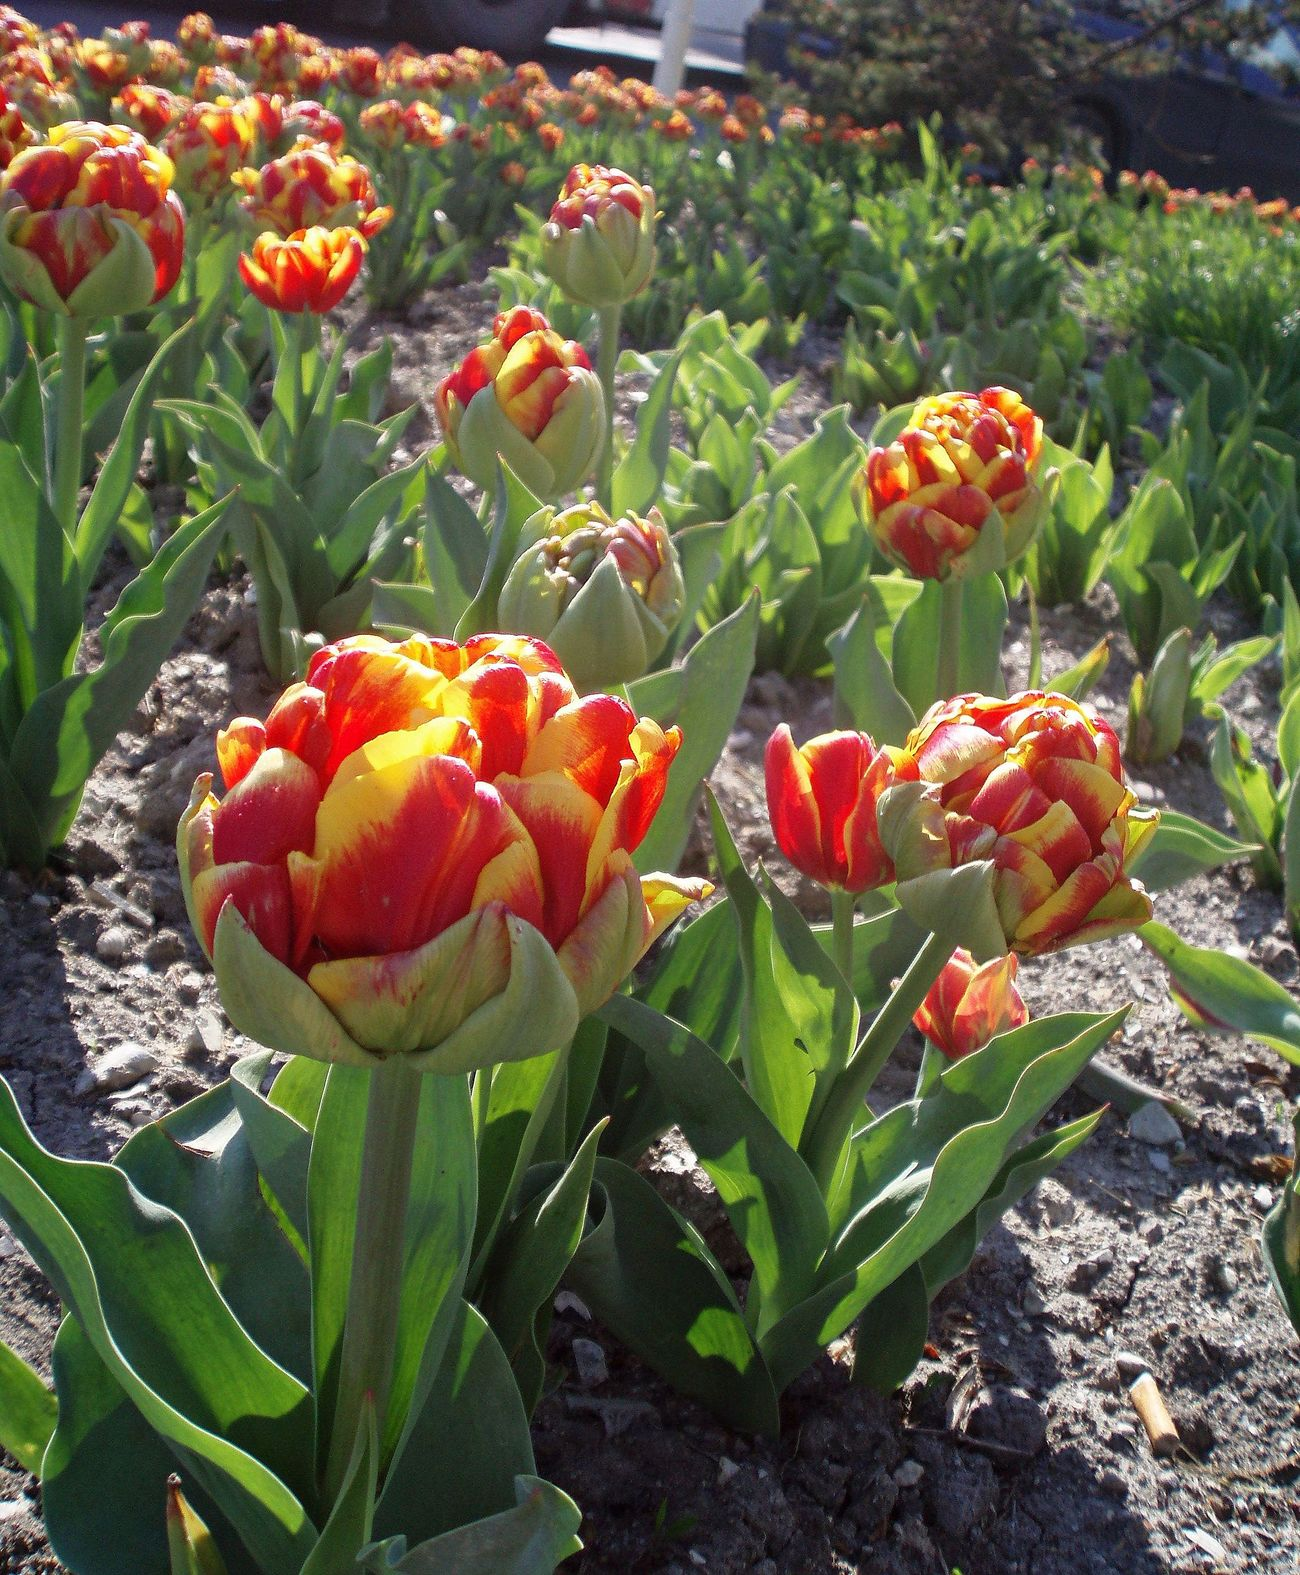 Cilesta Flower Bed Flowers Novorossiysk Tulips Spring Spring Flowers Tulips Yellow & Red Striped Tulips